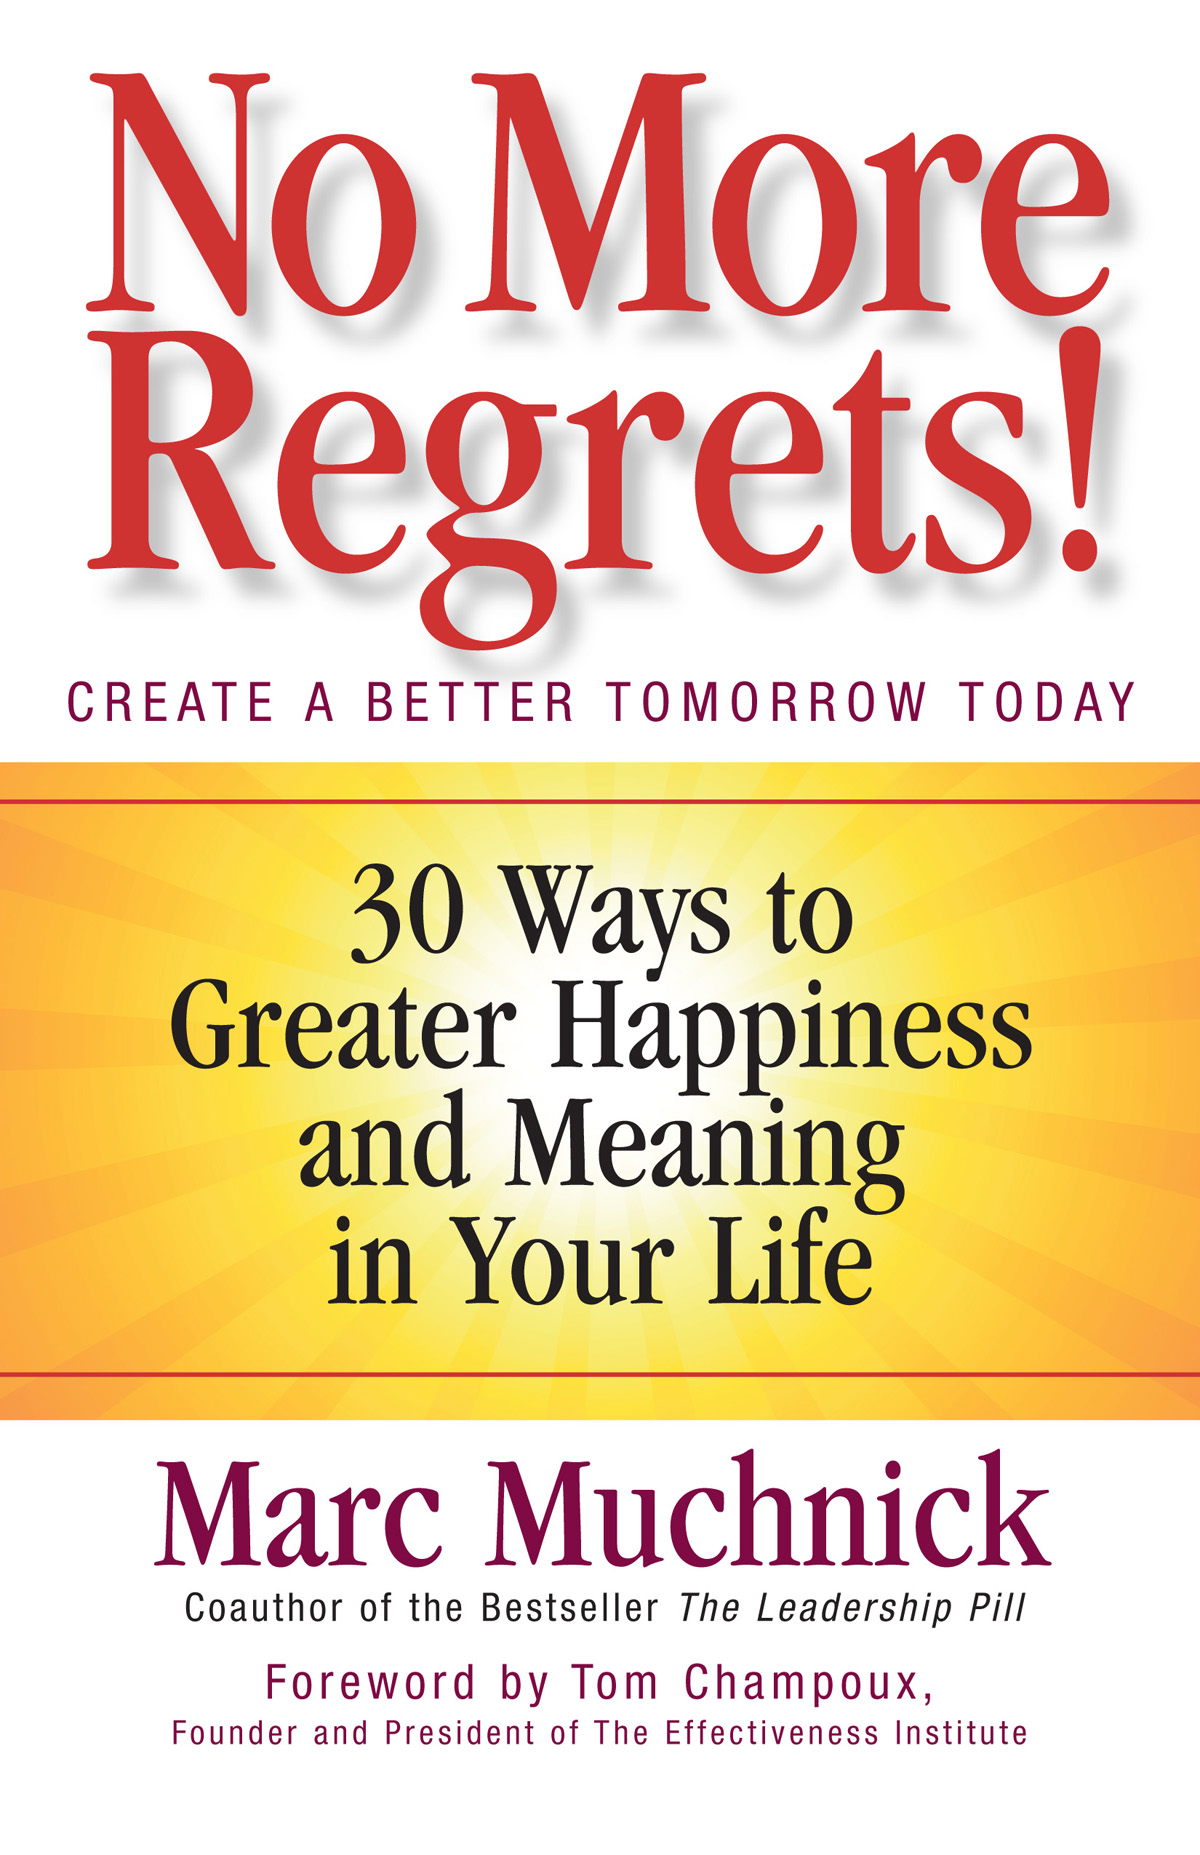 No More Regrets! By: Mark Muchnick